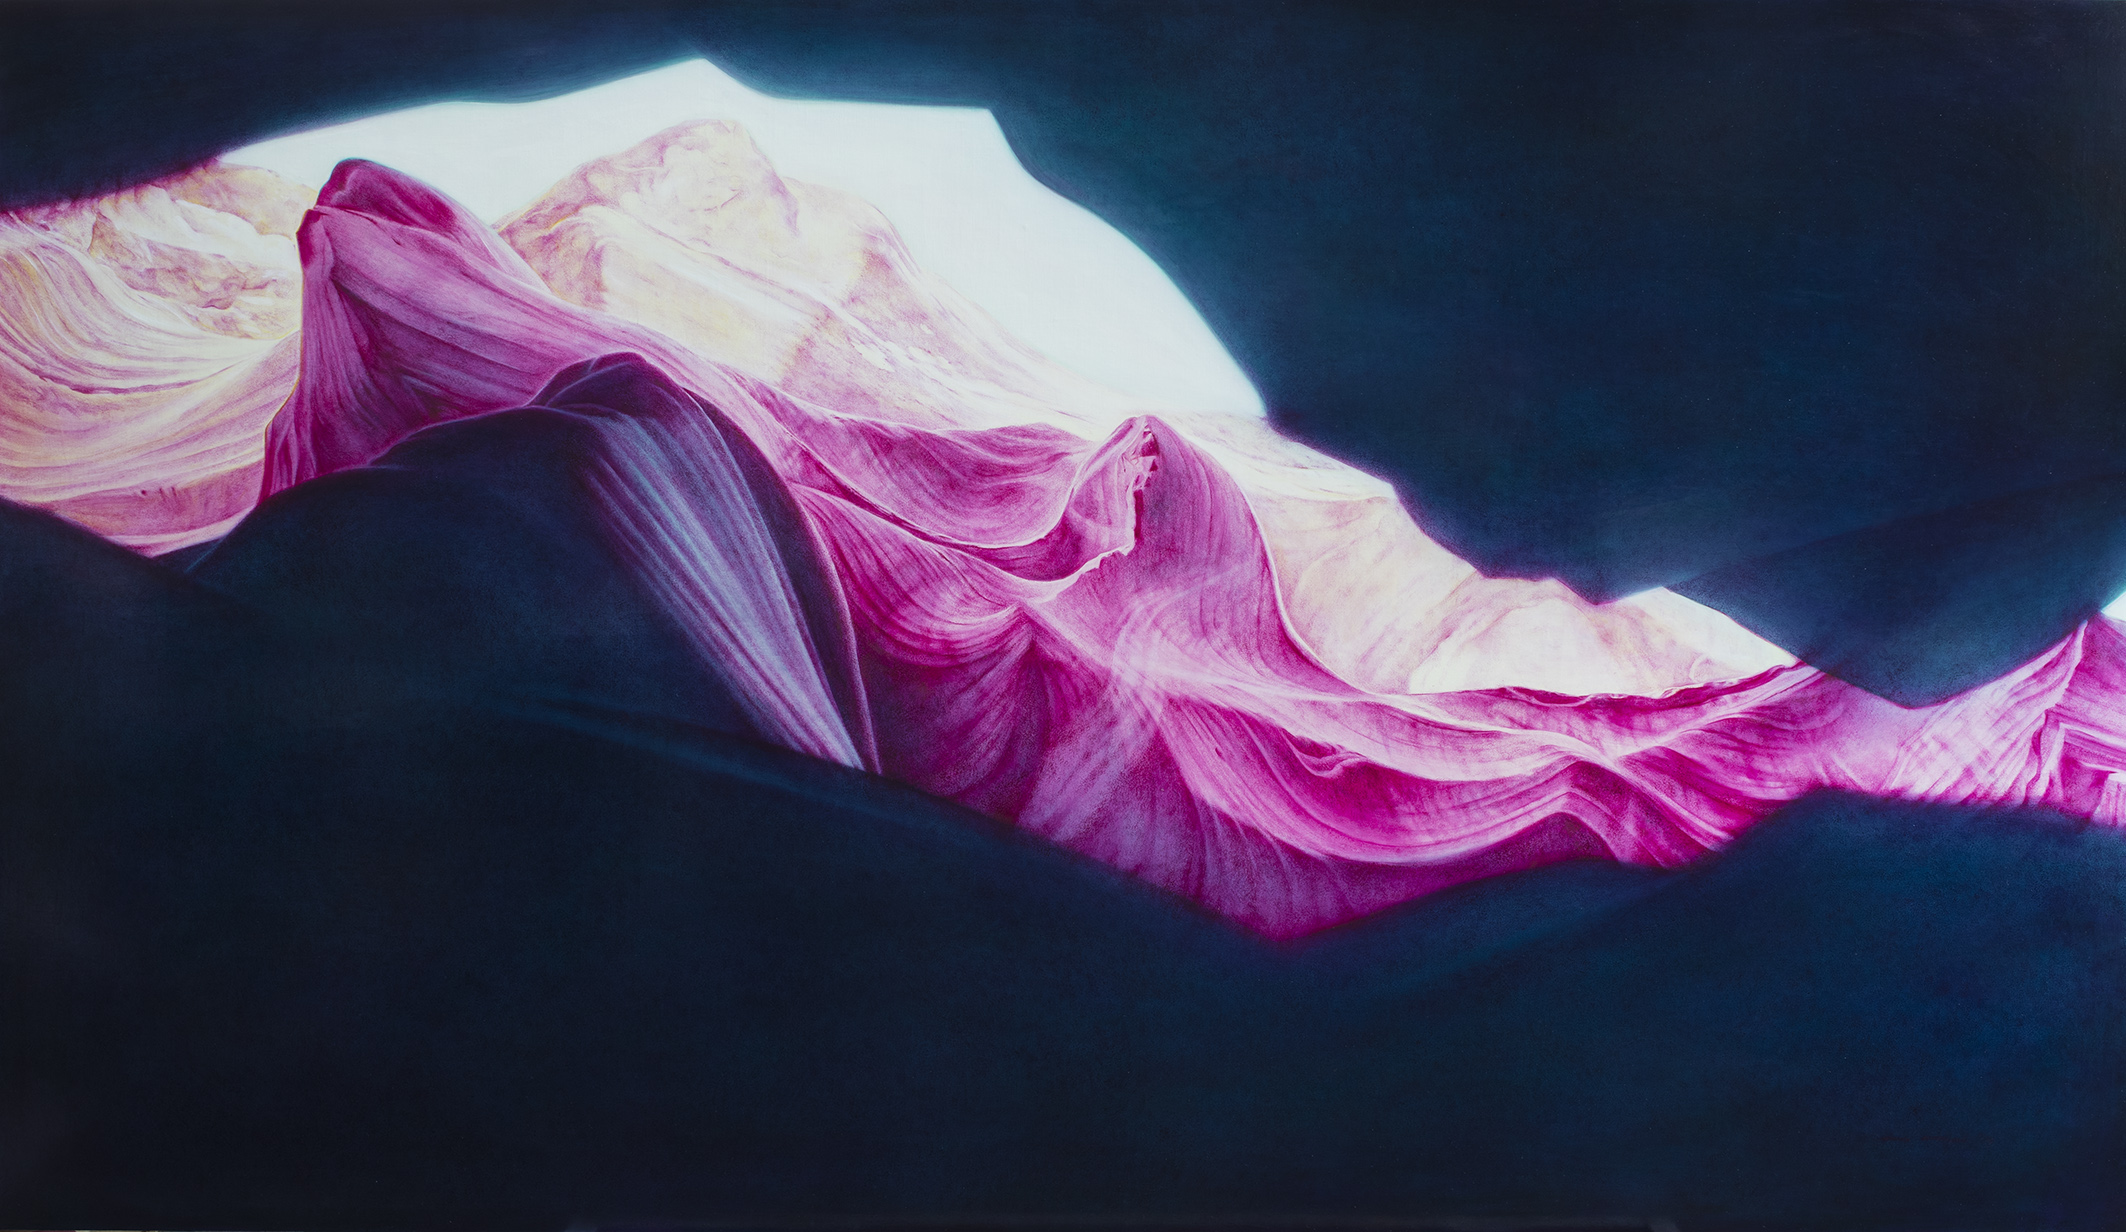 羚羊谷 Upper Antelope Canyon  油彩畫布 Oil on canvas 160x260 cm 2019